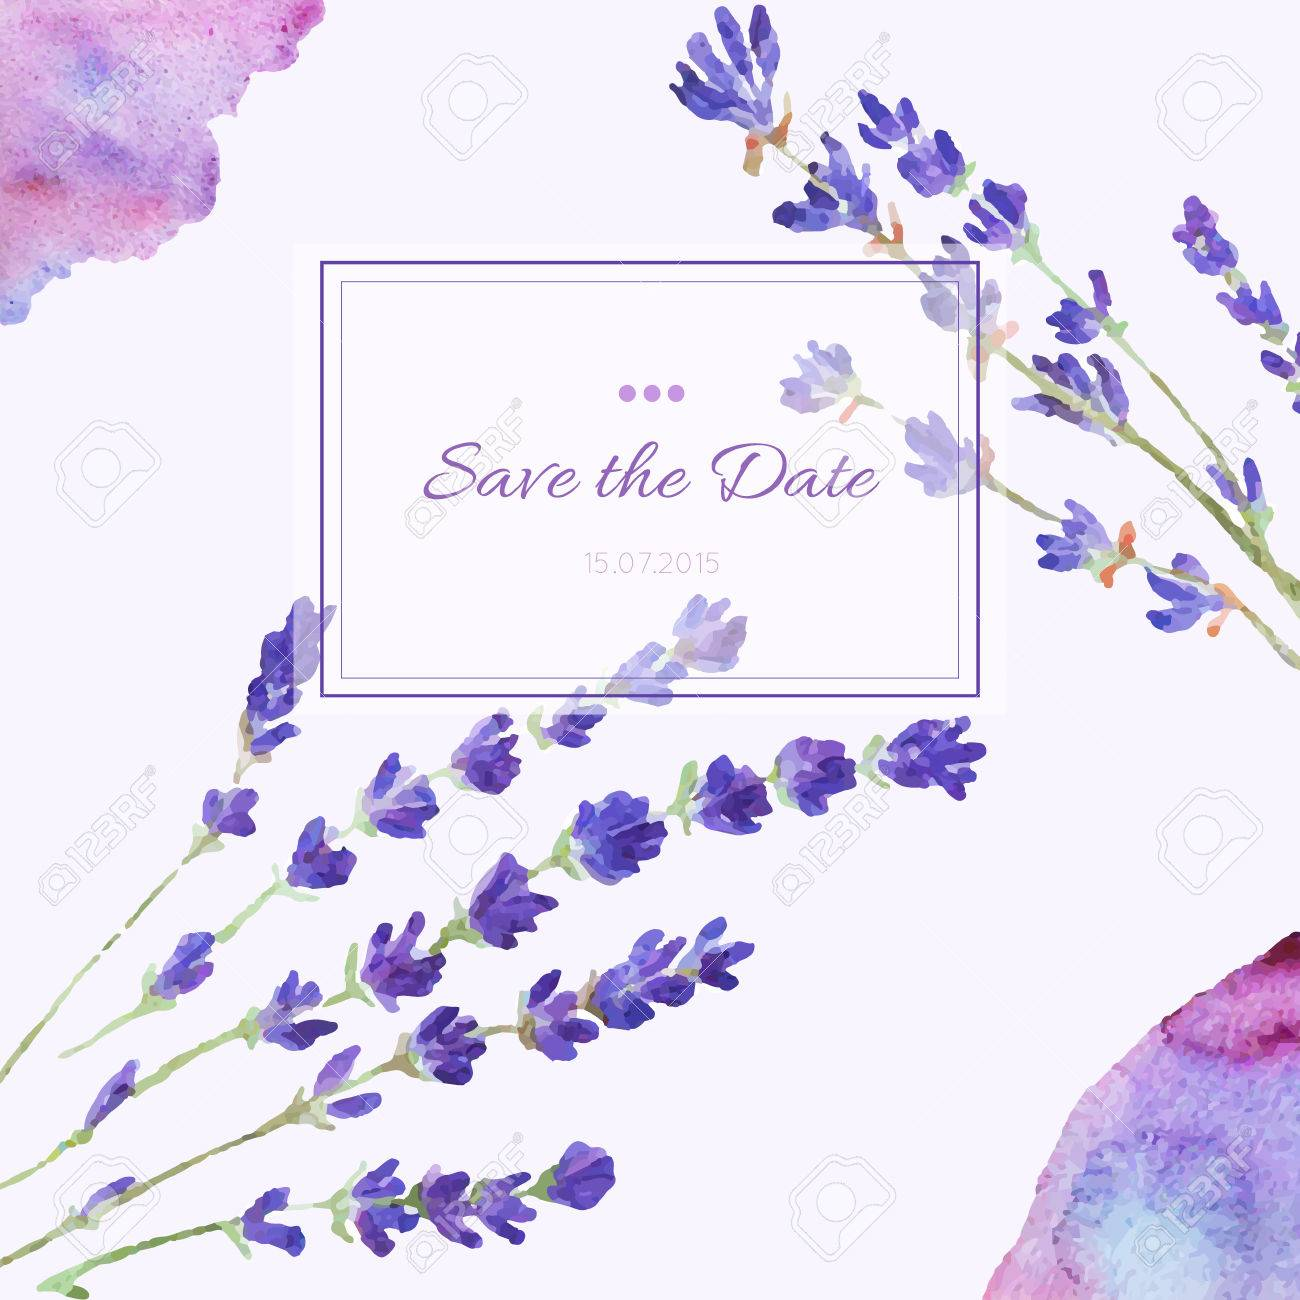 Design invitation card hand drawn watercolor template design for banco de imagens design invitation card hand drawn watercolor template design for wedding invitations flyers save the date card vector floral card stopboris Images